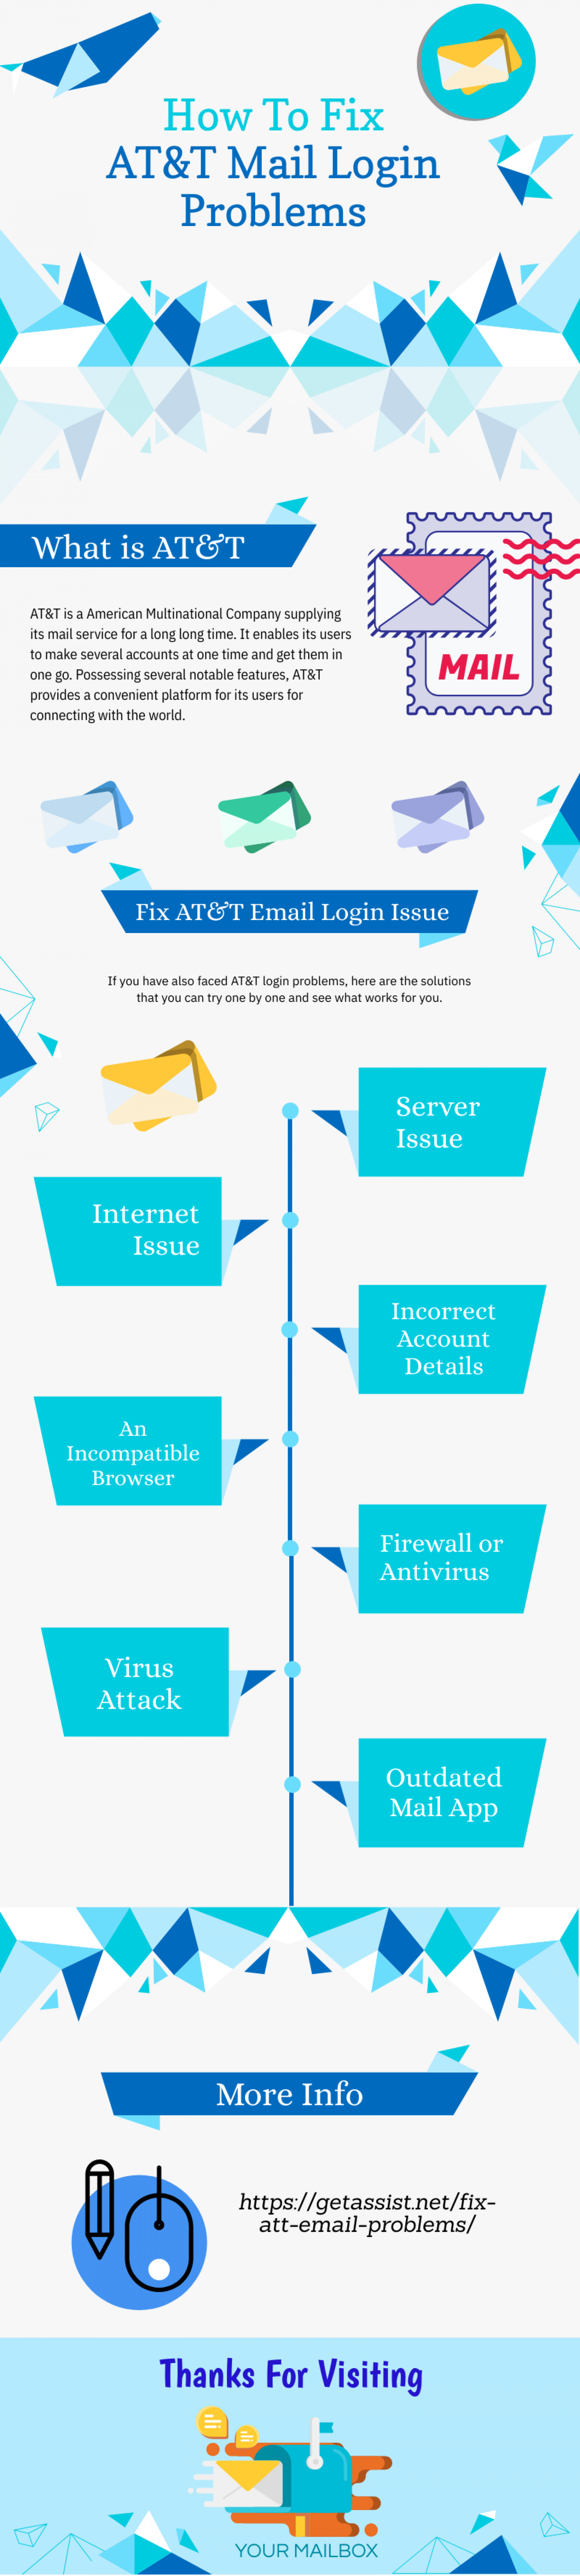 How do I log in to my ATT Email Account Infographic